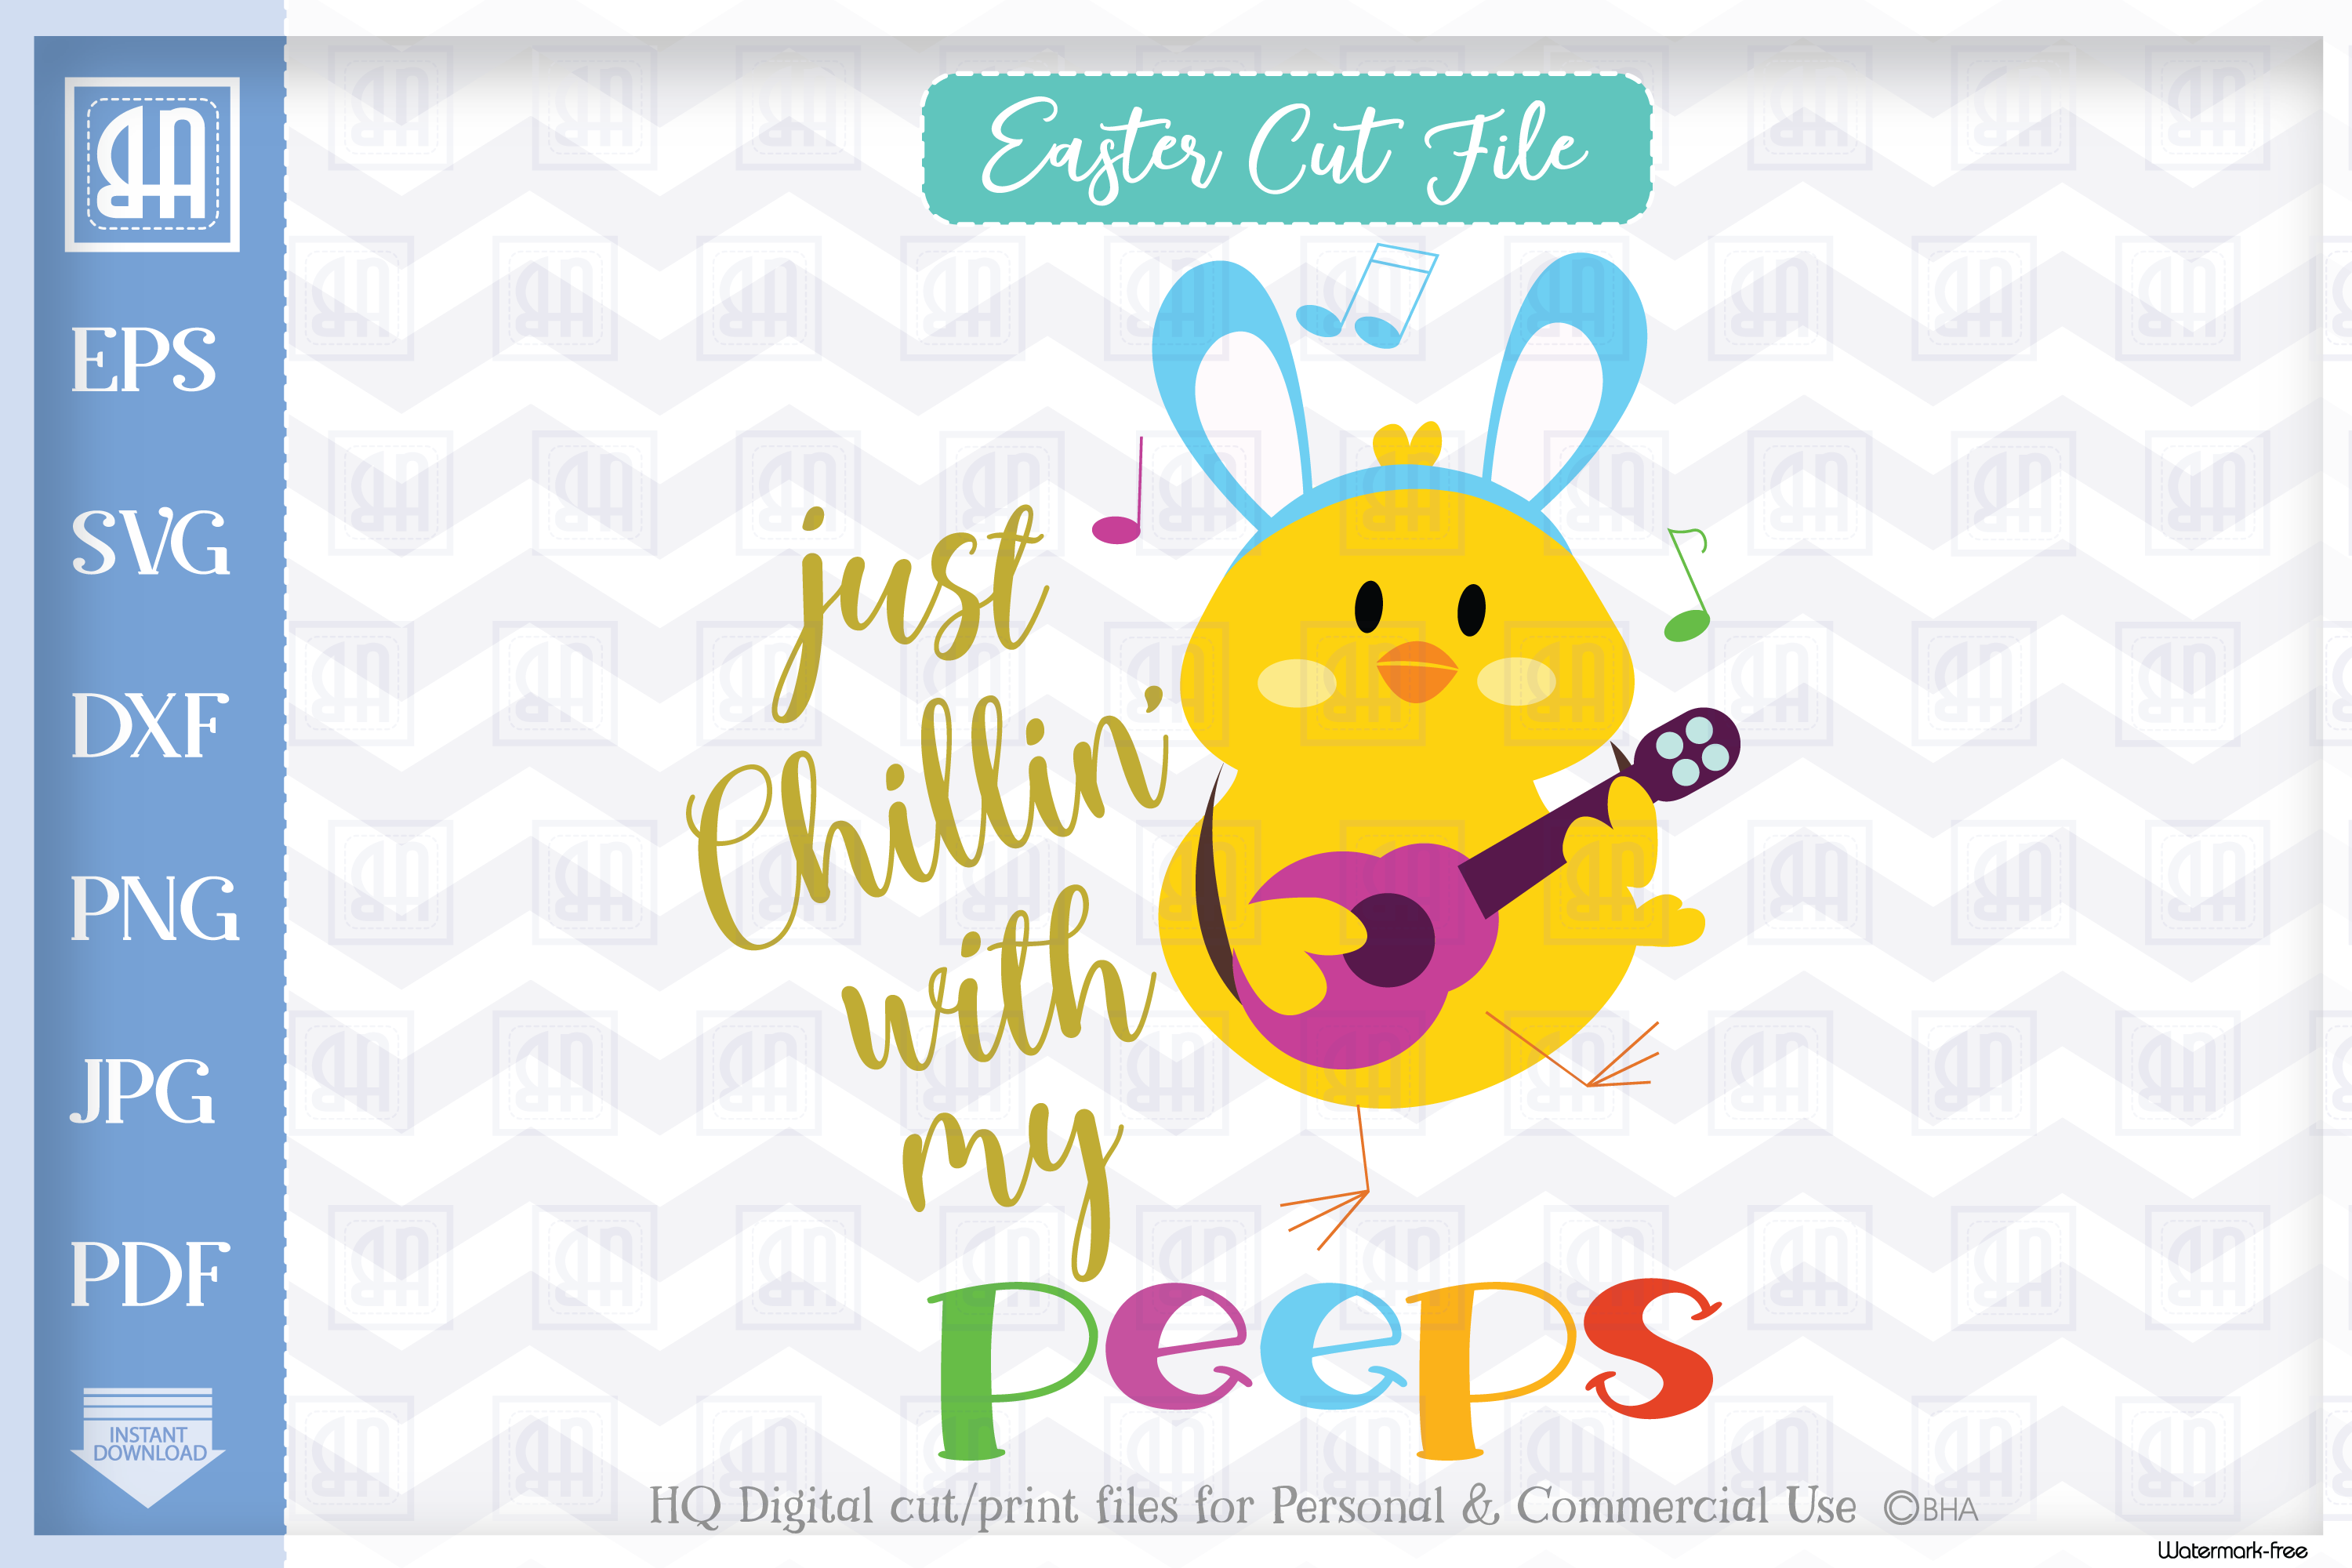 Download Free Chillin With My Peeps Easter Graphic By Blueberry Hill Art for Cricut Explore, Silhouette and other cutting machines.